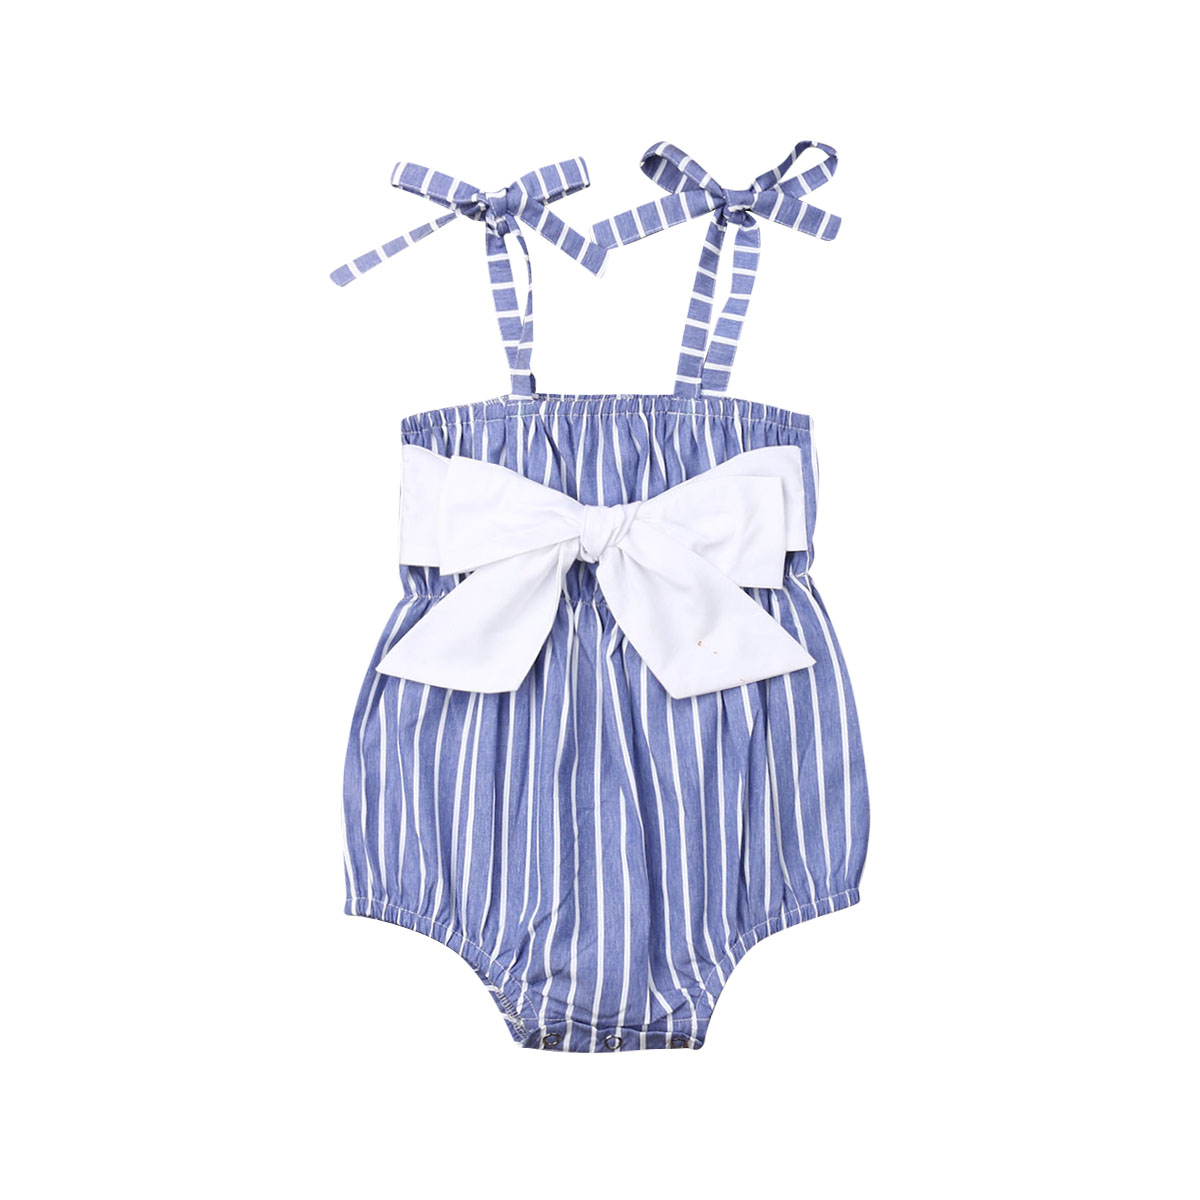 0-24M Summer Cute Infant Kids Baby Girls Bodysuits Blue Striped Sleeveless Belt Jumpsuits Clothes(China)